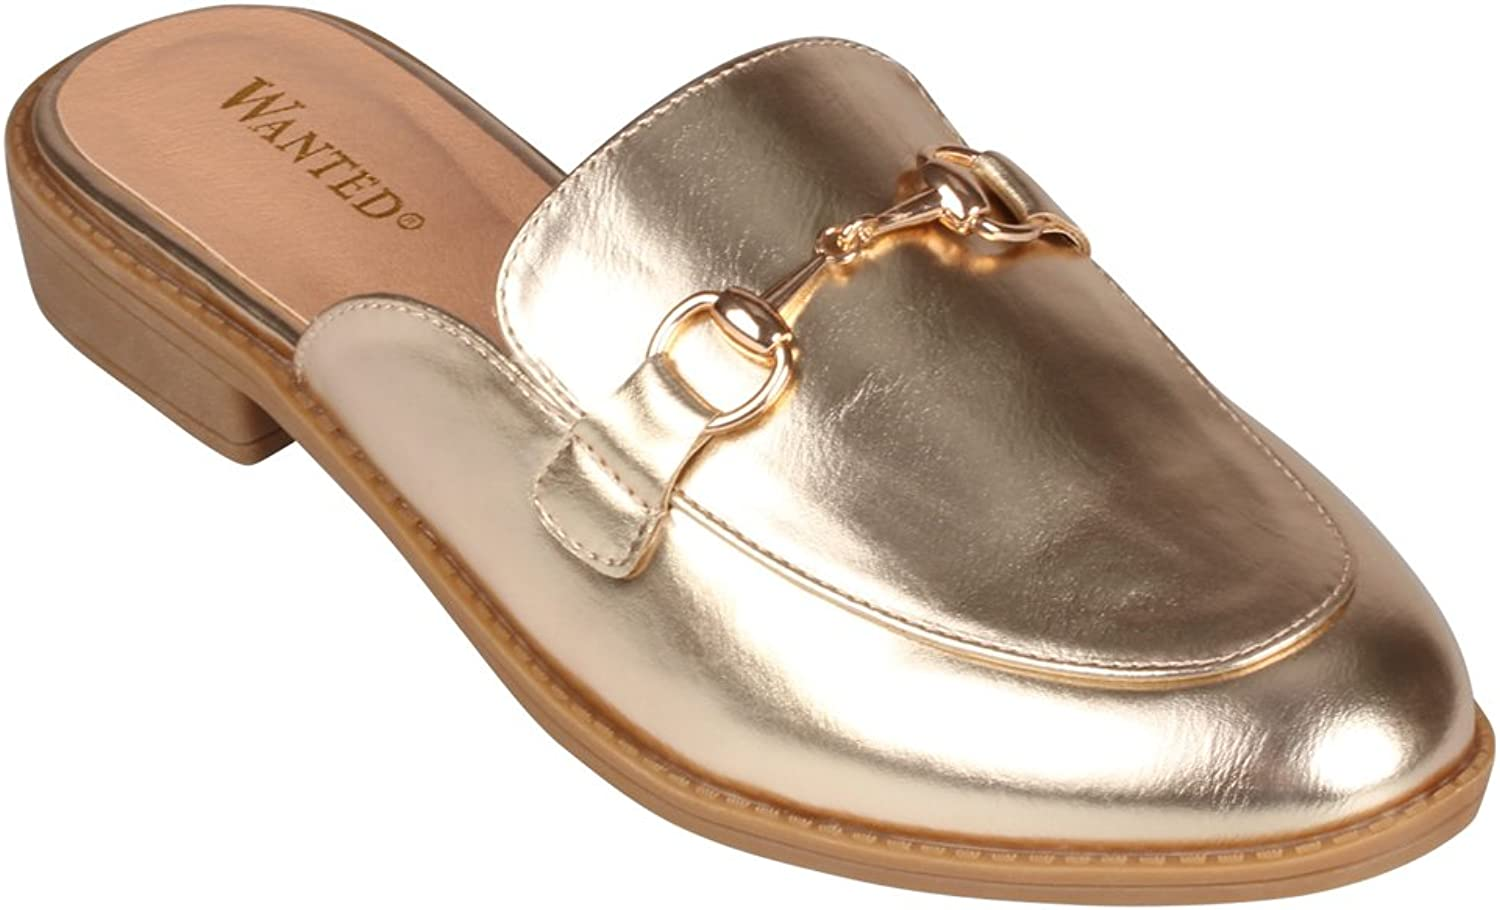 Wanted Cavallo Slip on Loafers